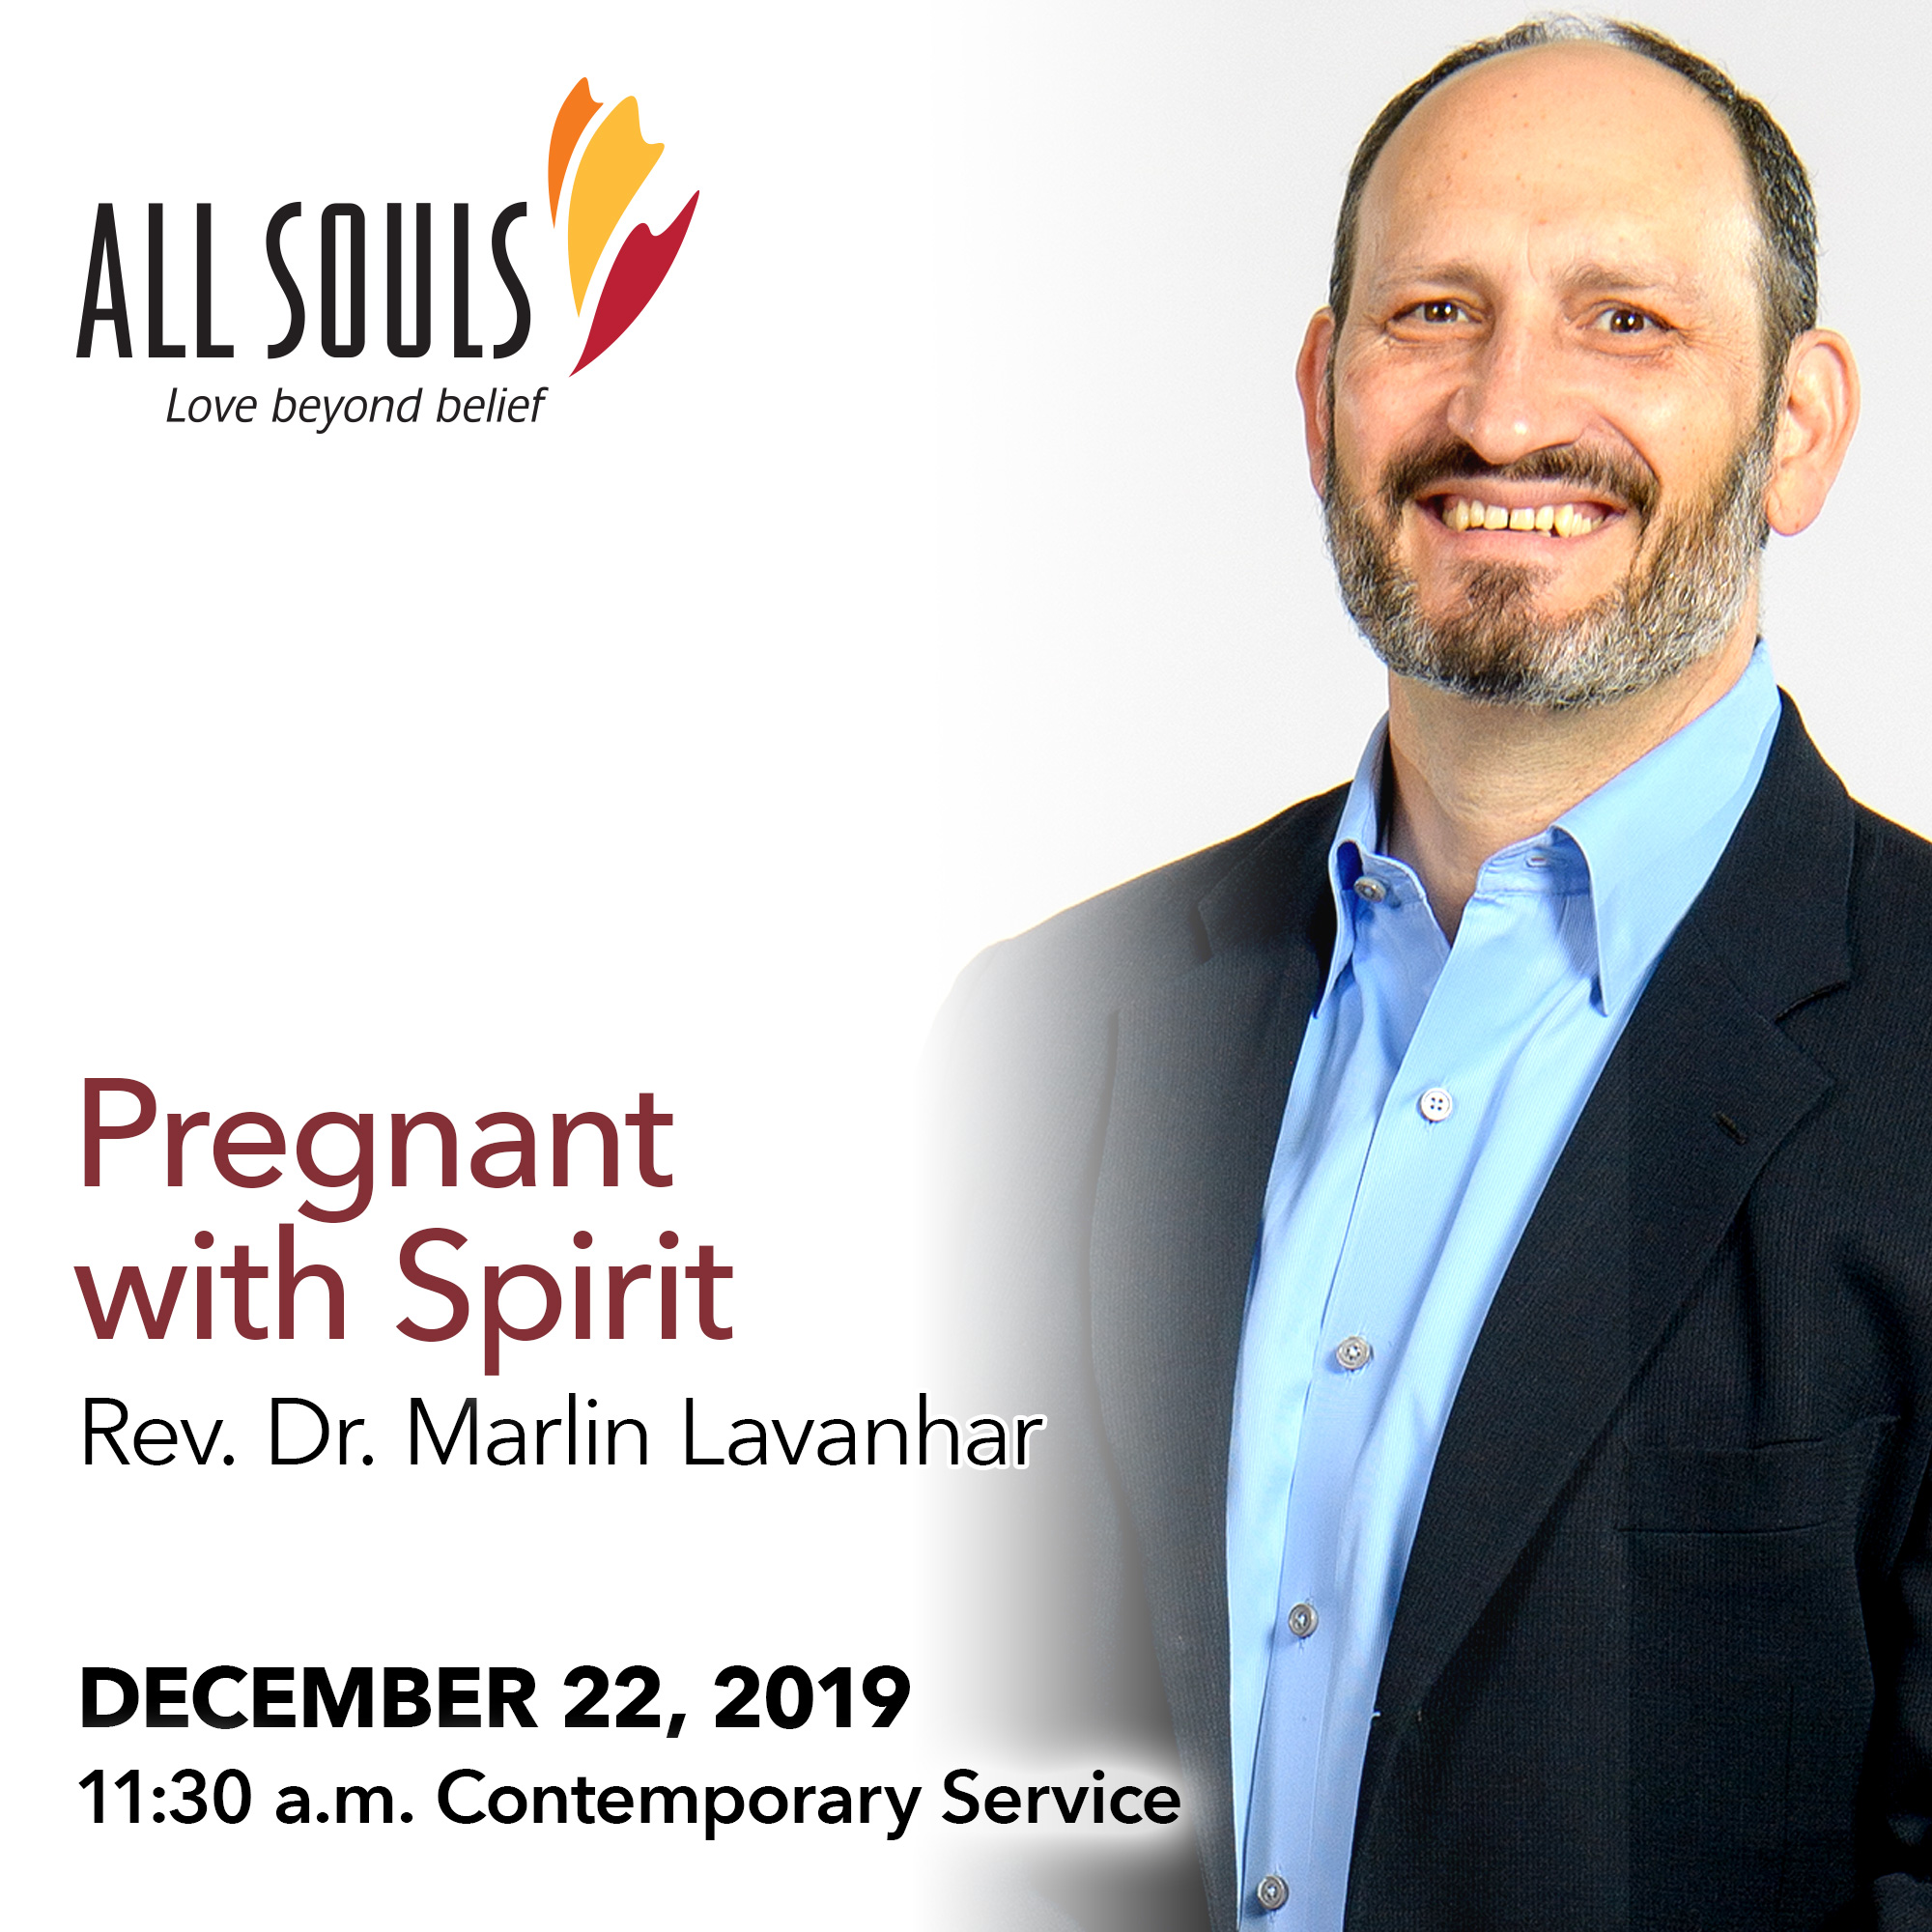 'PREGNANT WITH SPIRIT' - A sermon by Rev. Dr. Marlin Lavanhar (Contemporary Service) show art